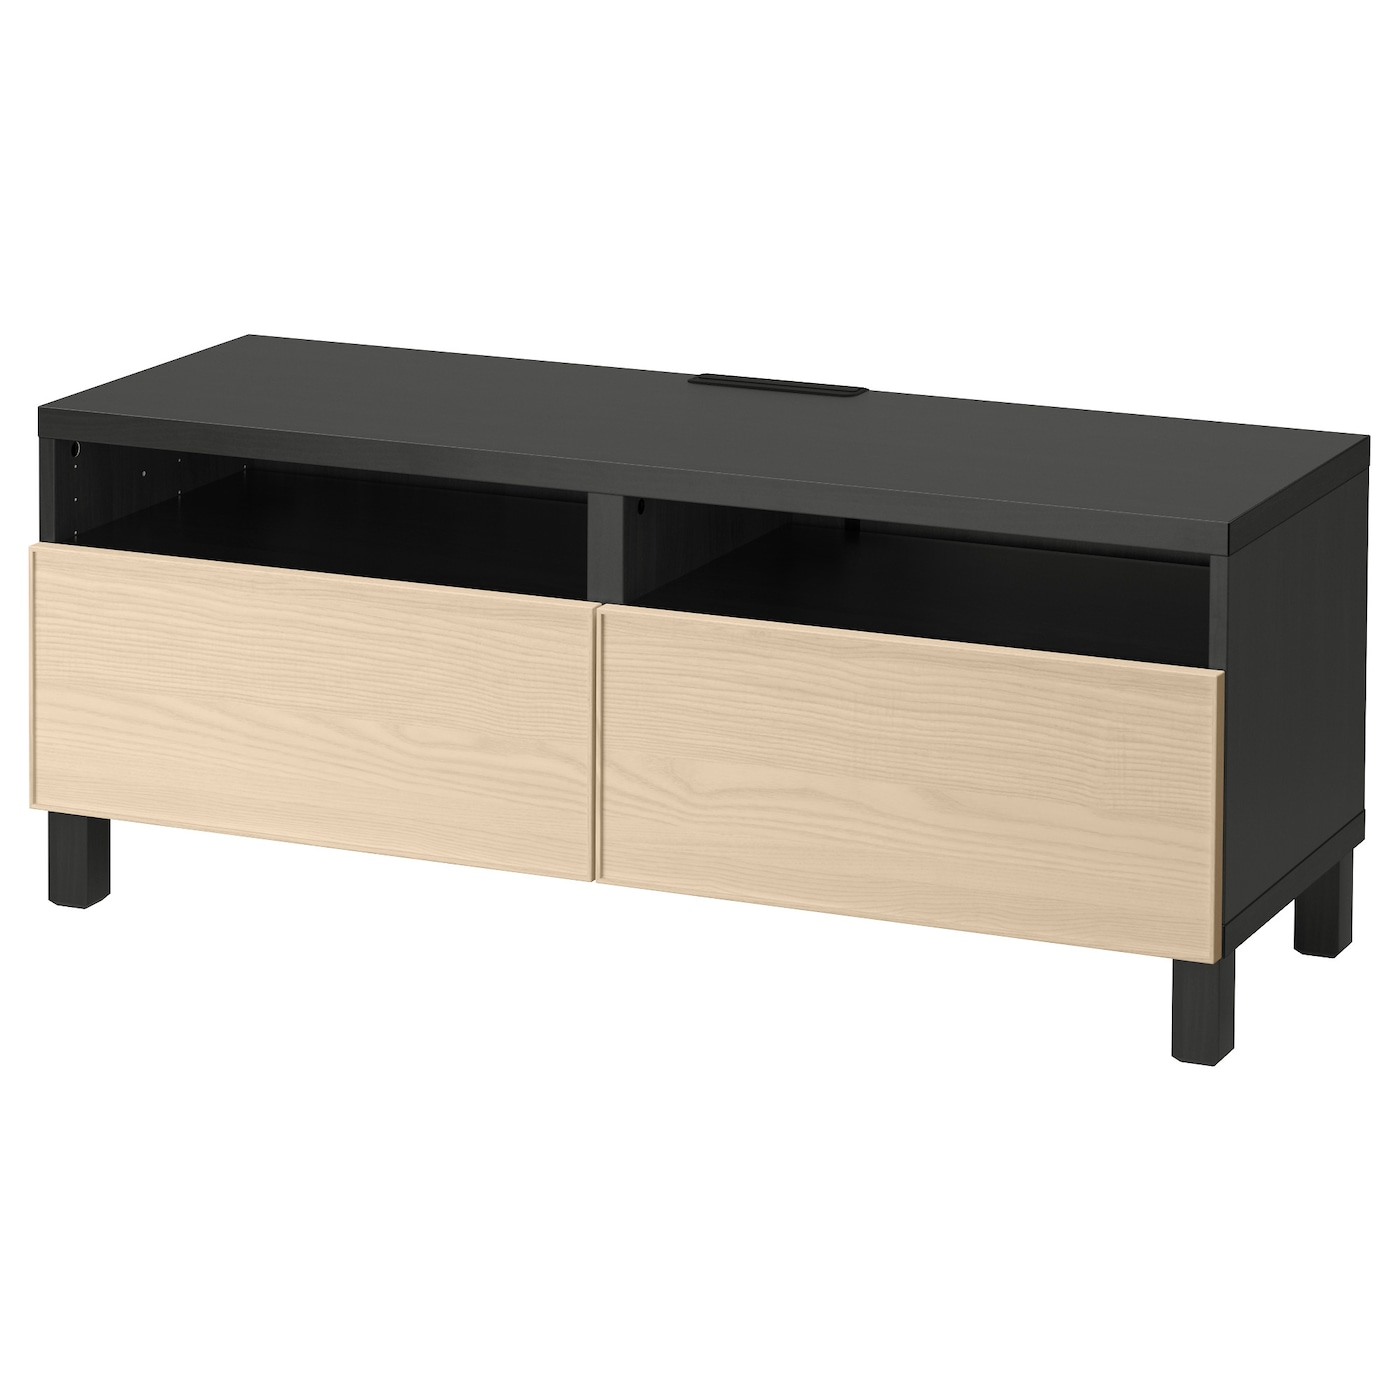 Best Tv Bench With Drawers Black Brown Inviken Ash Veneer 120x40x48 Cm Ikea